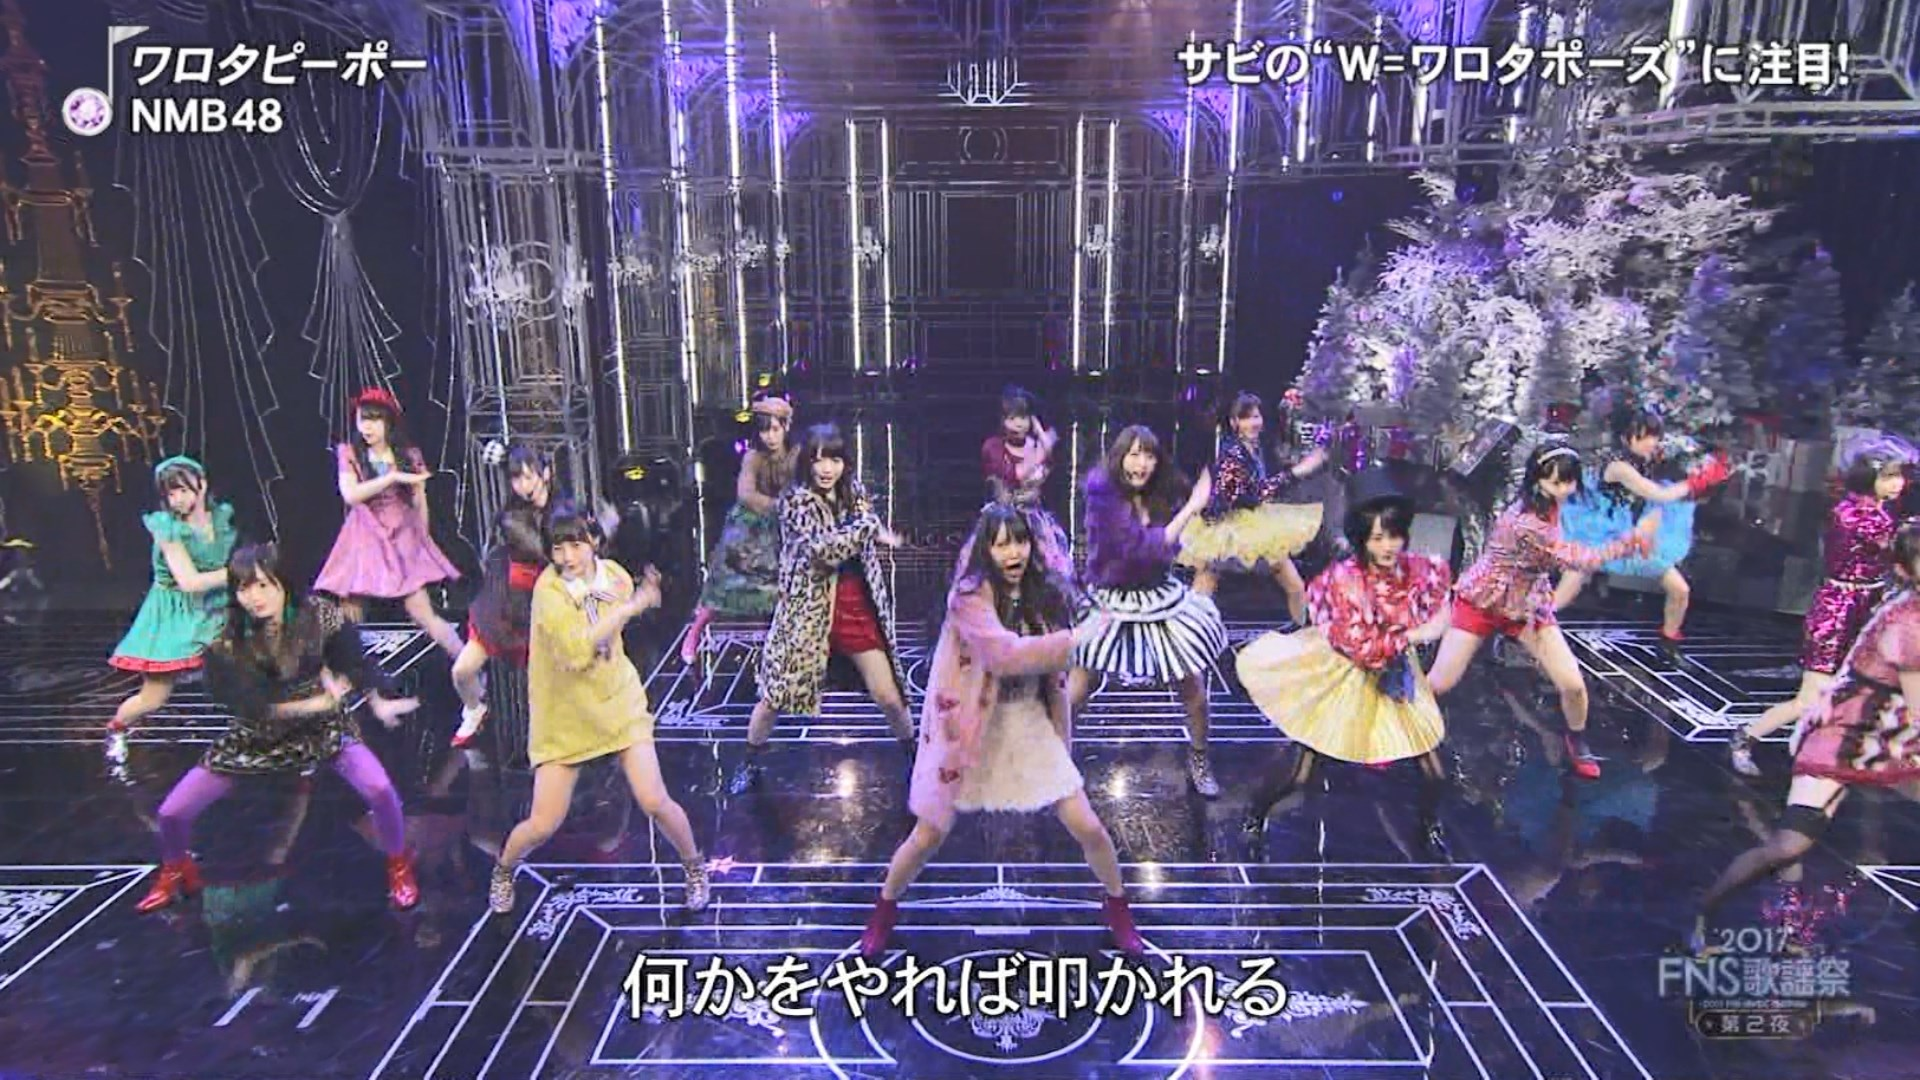 2017FNS歌謡祭第2夜・NMB48ワロタピーポーキャプ-010